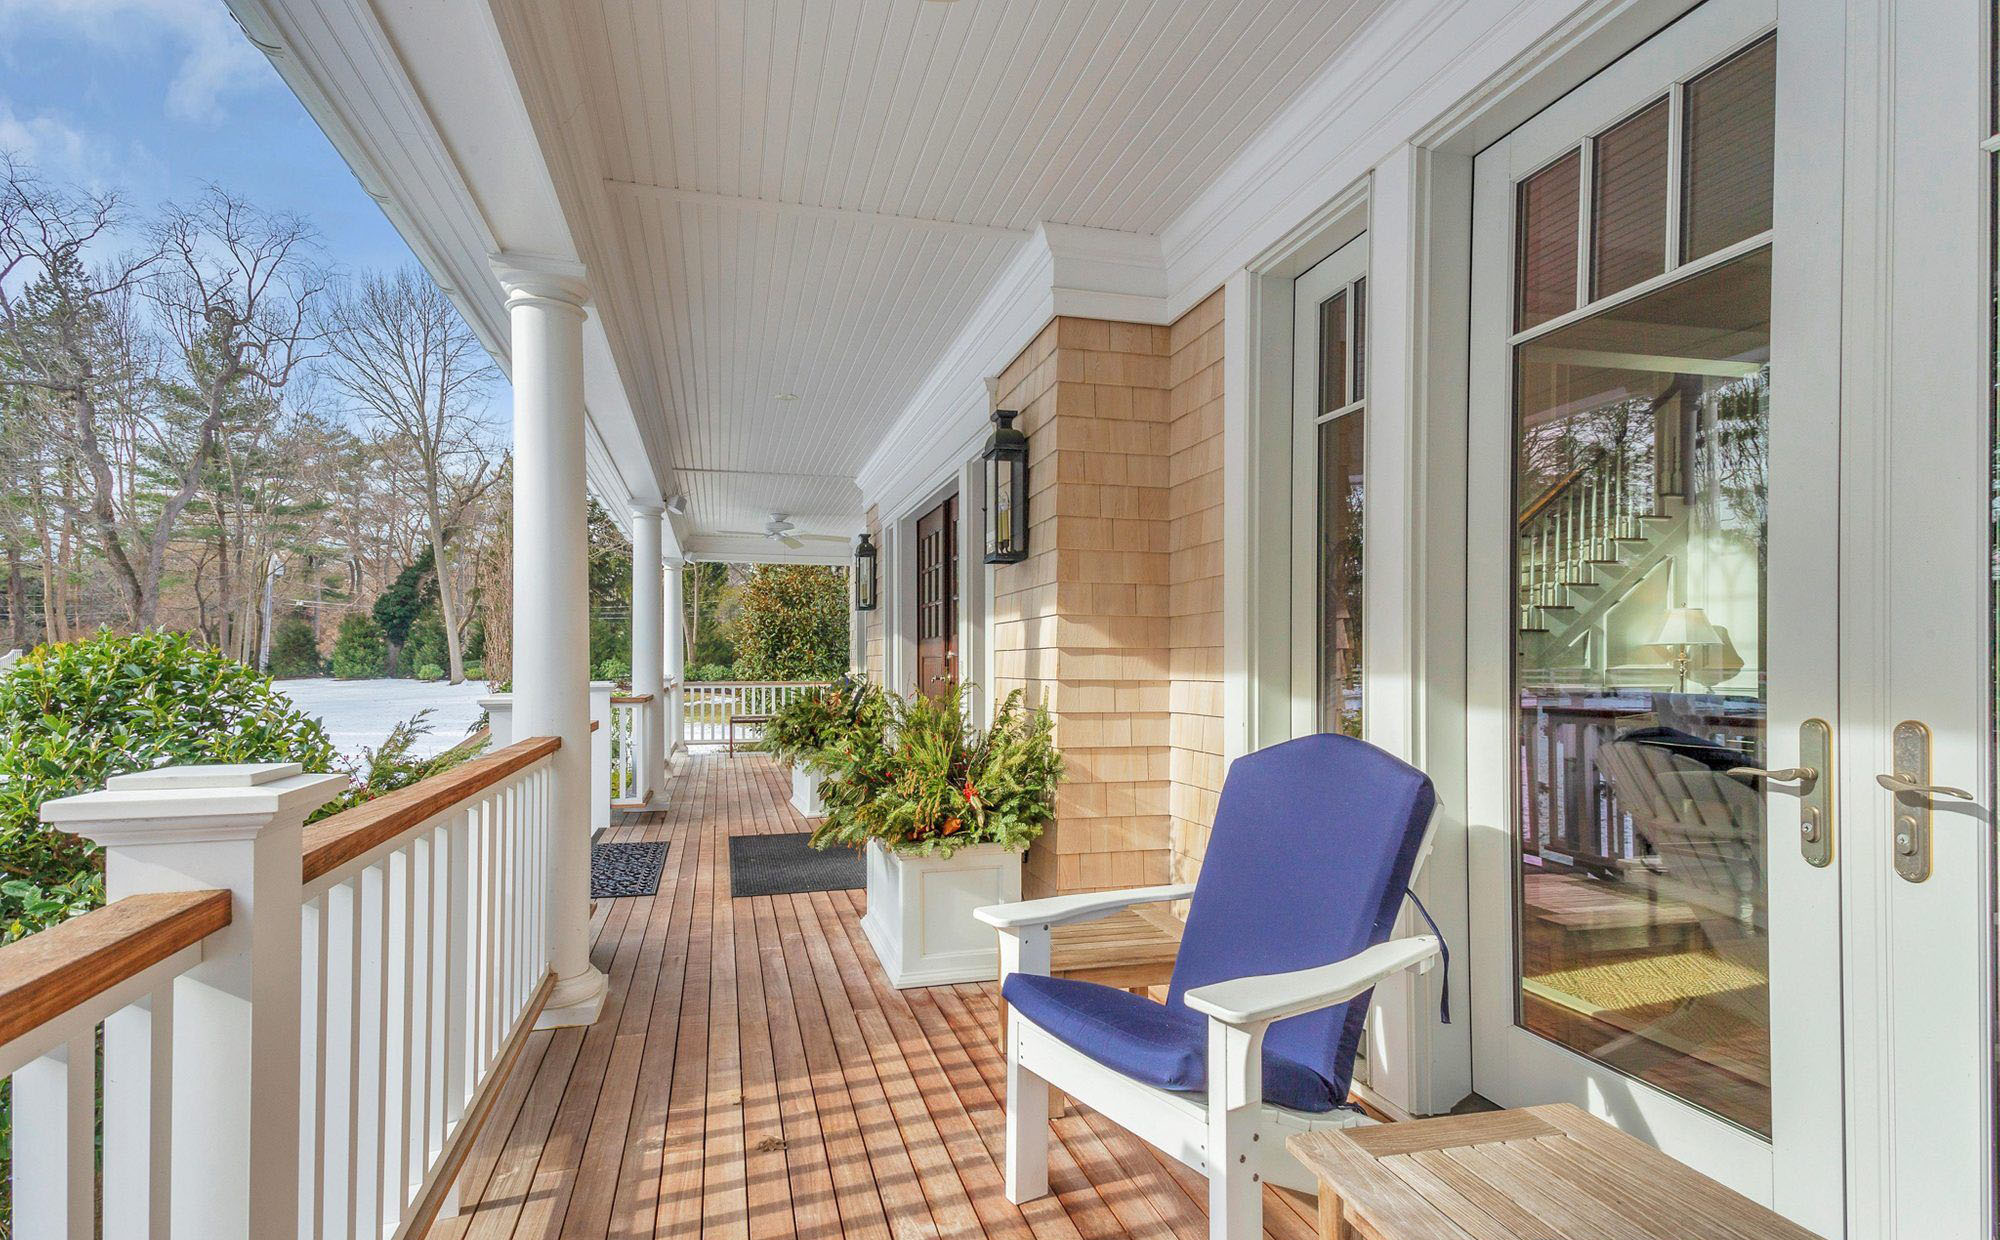 Natural real wood front porch floor with white columns & railings. Cedar shake siding.